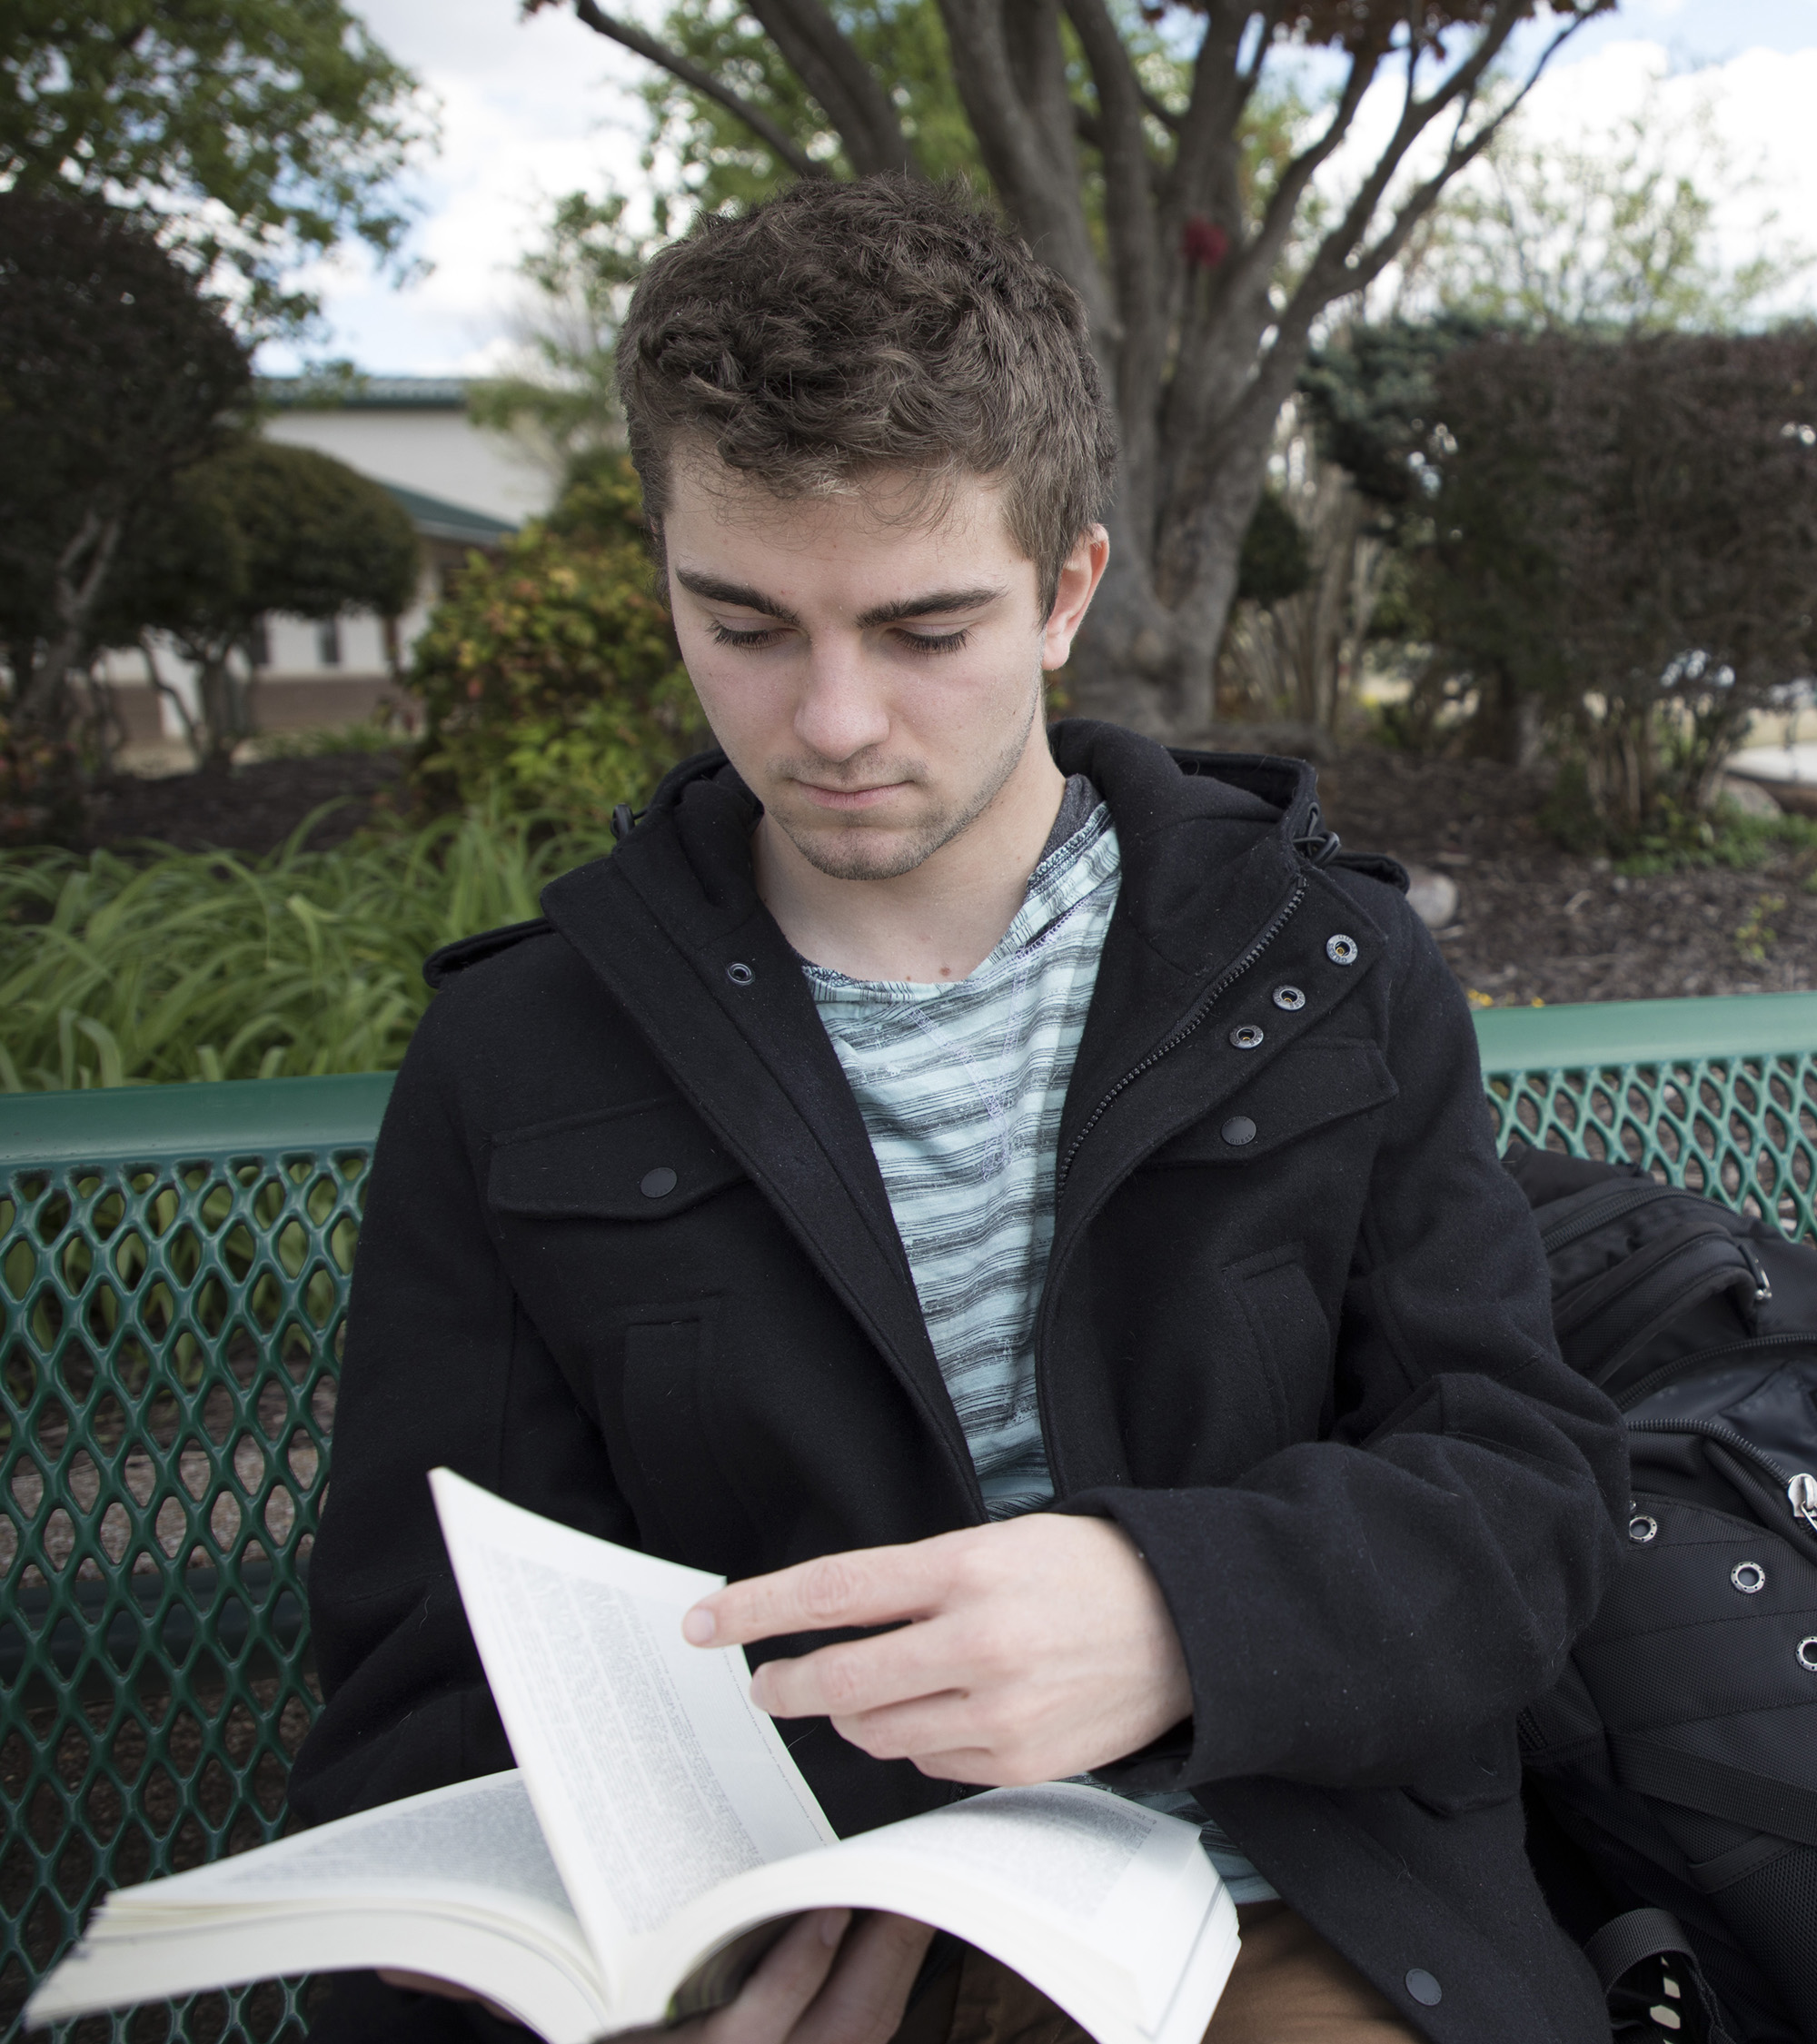 Male student outside with a book